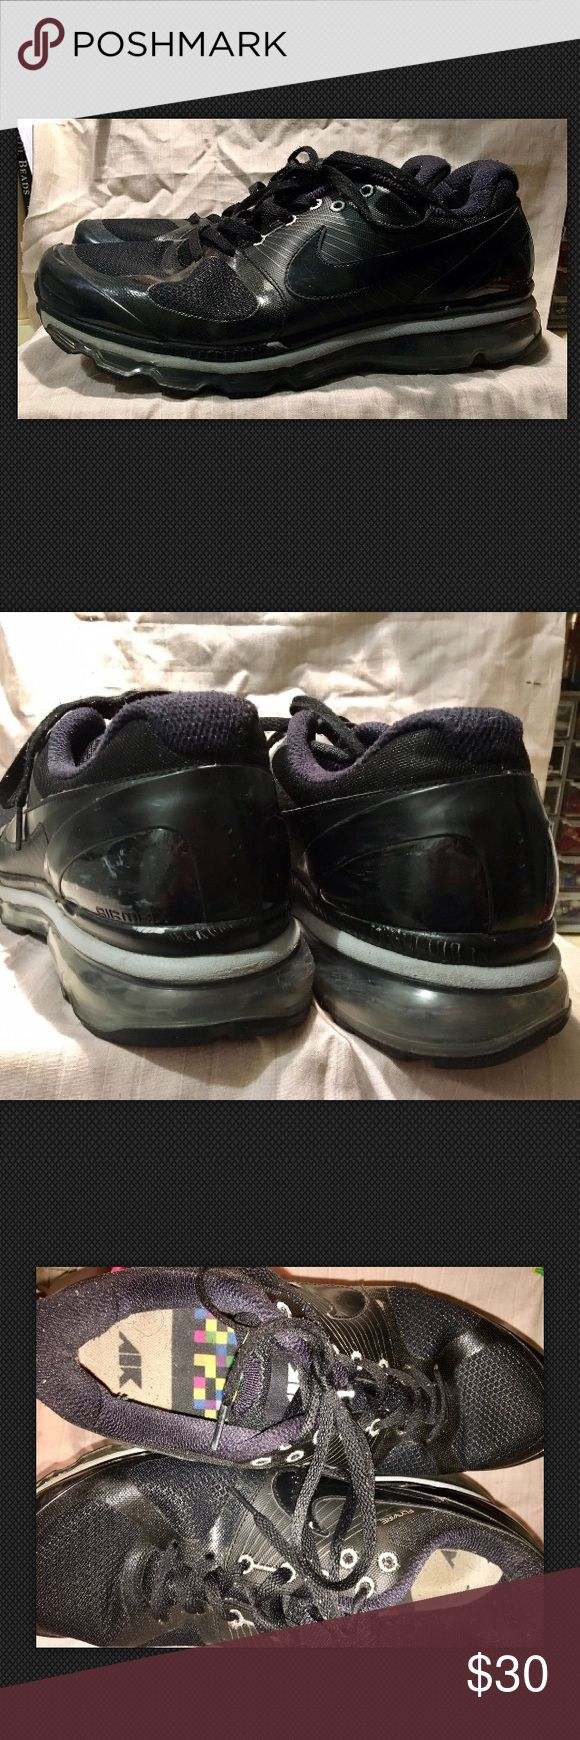 Nike Air Max 360 Flywire 2010 Black Men's Sz 13 These shoes are in great condition despite a few scuffs. Please make sure to refer to the pictures.   Black Nike Air Max 360 Flywire 2010 Running Shoes 386368-006 Size 13 US Men's Nike Shoes Sneakers